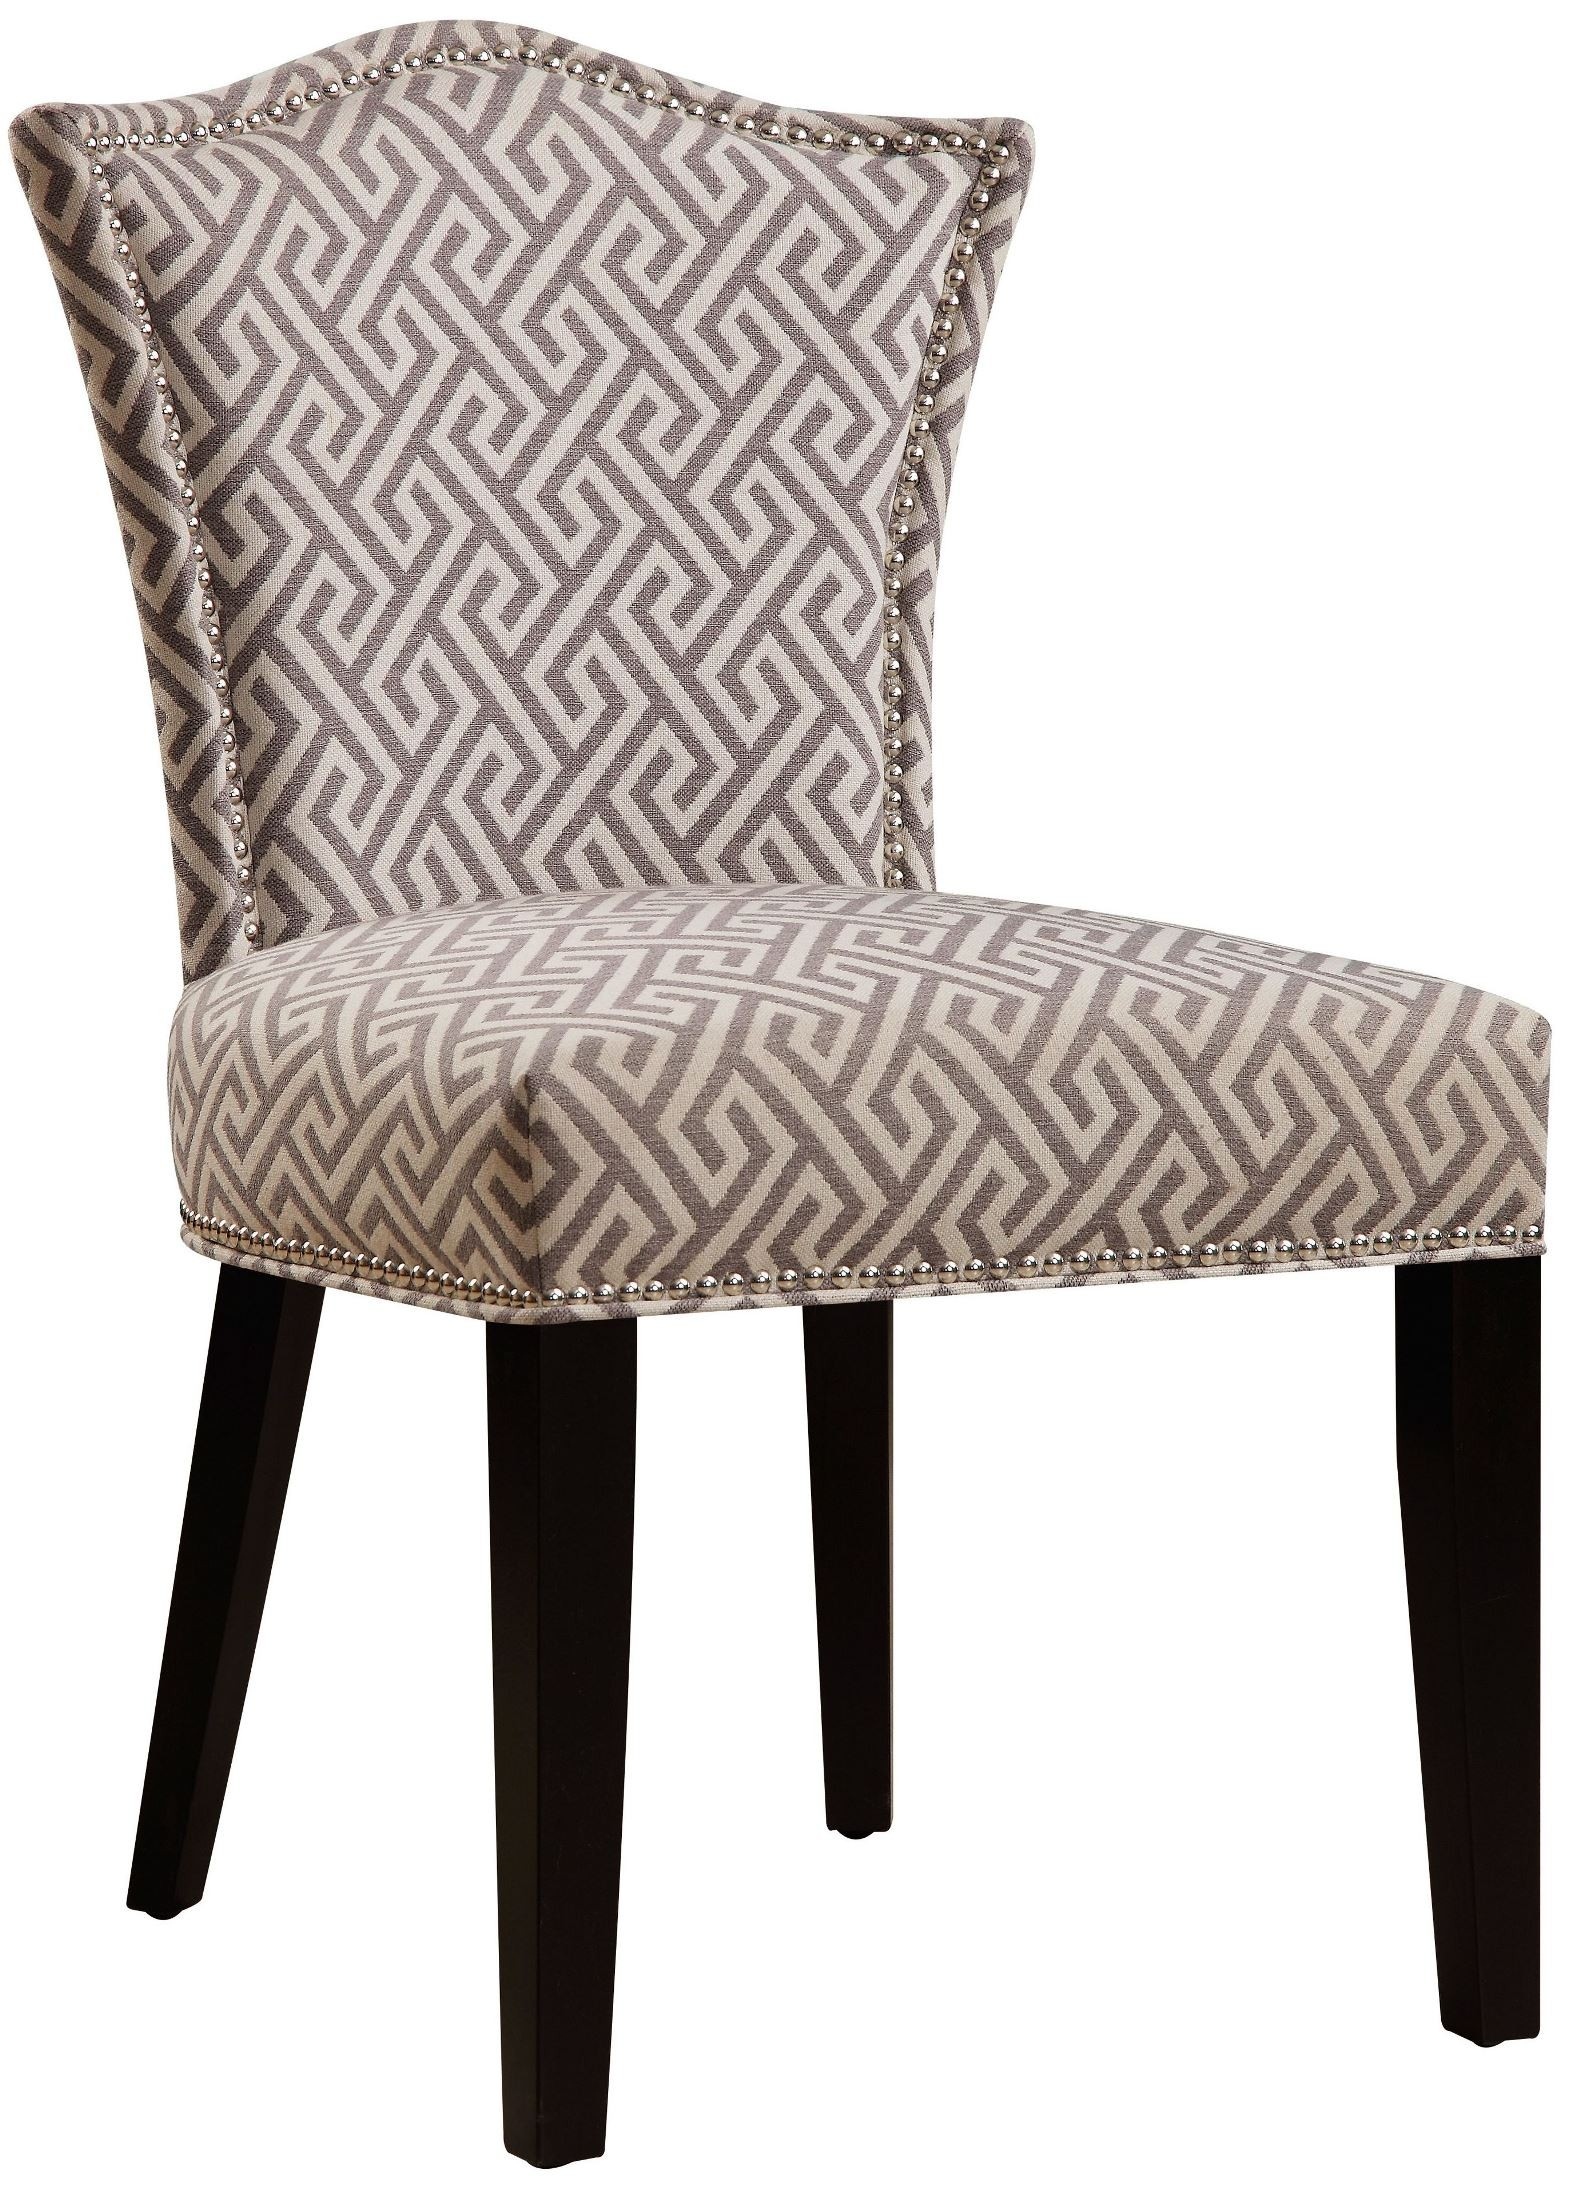 Gray Dining Chair Maza Grey Dining Chair From Pulaski Coleman Furniture